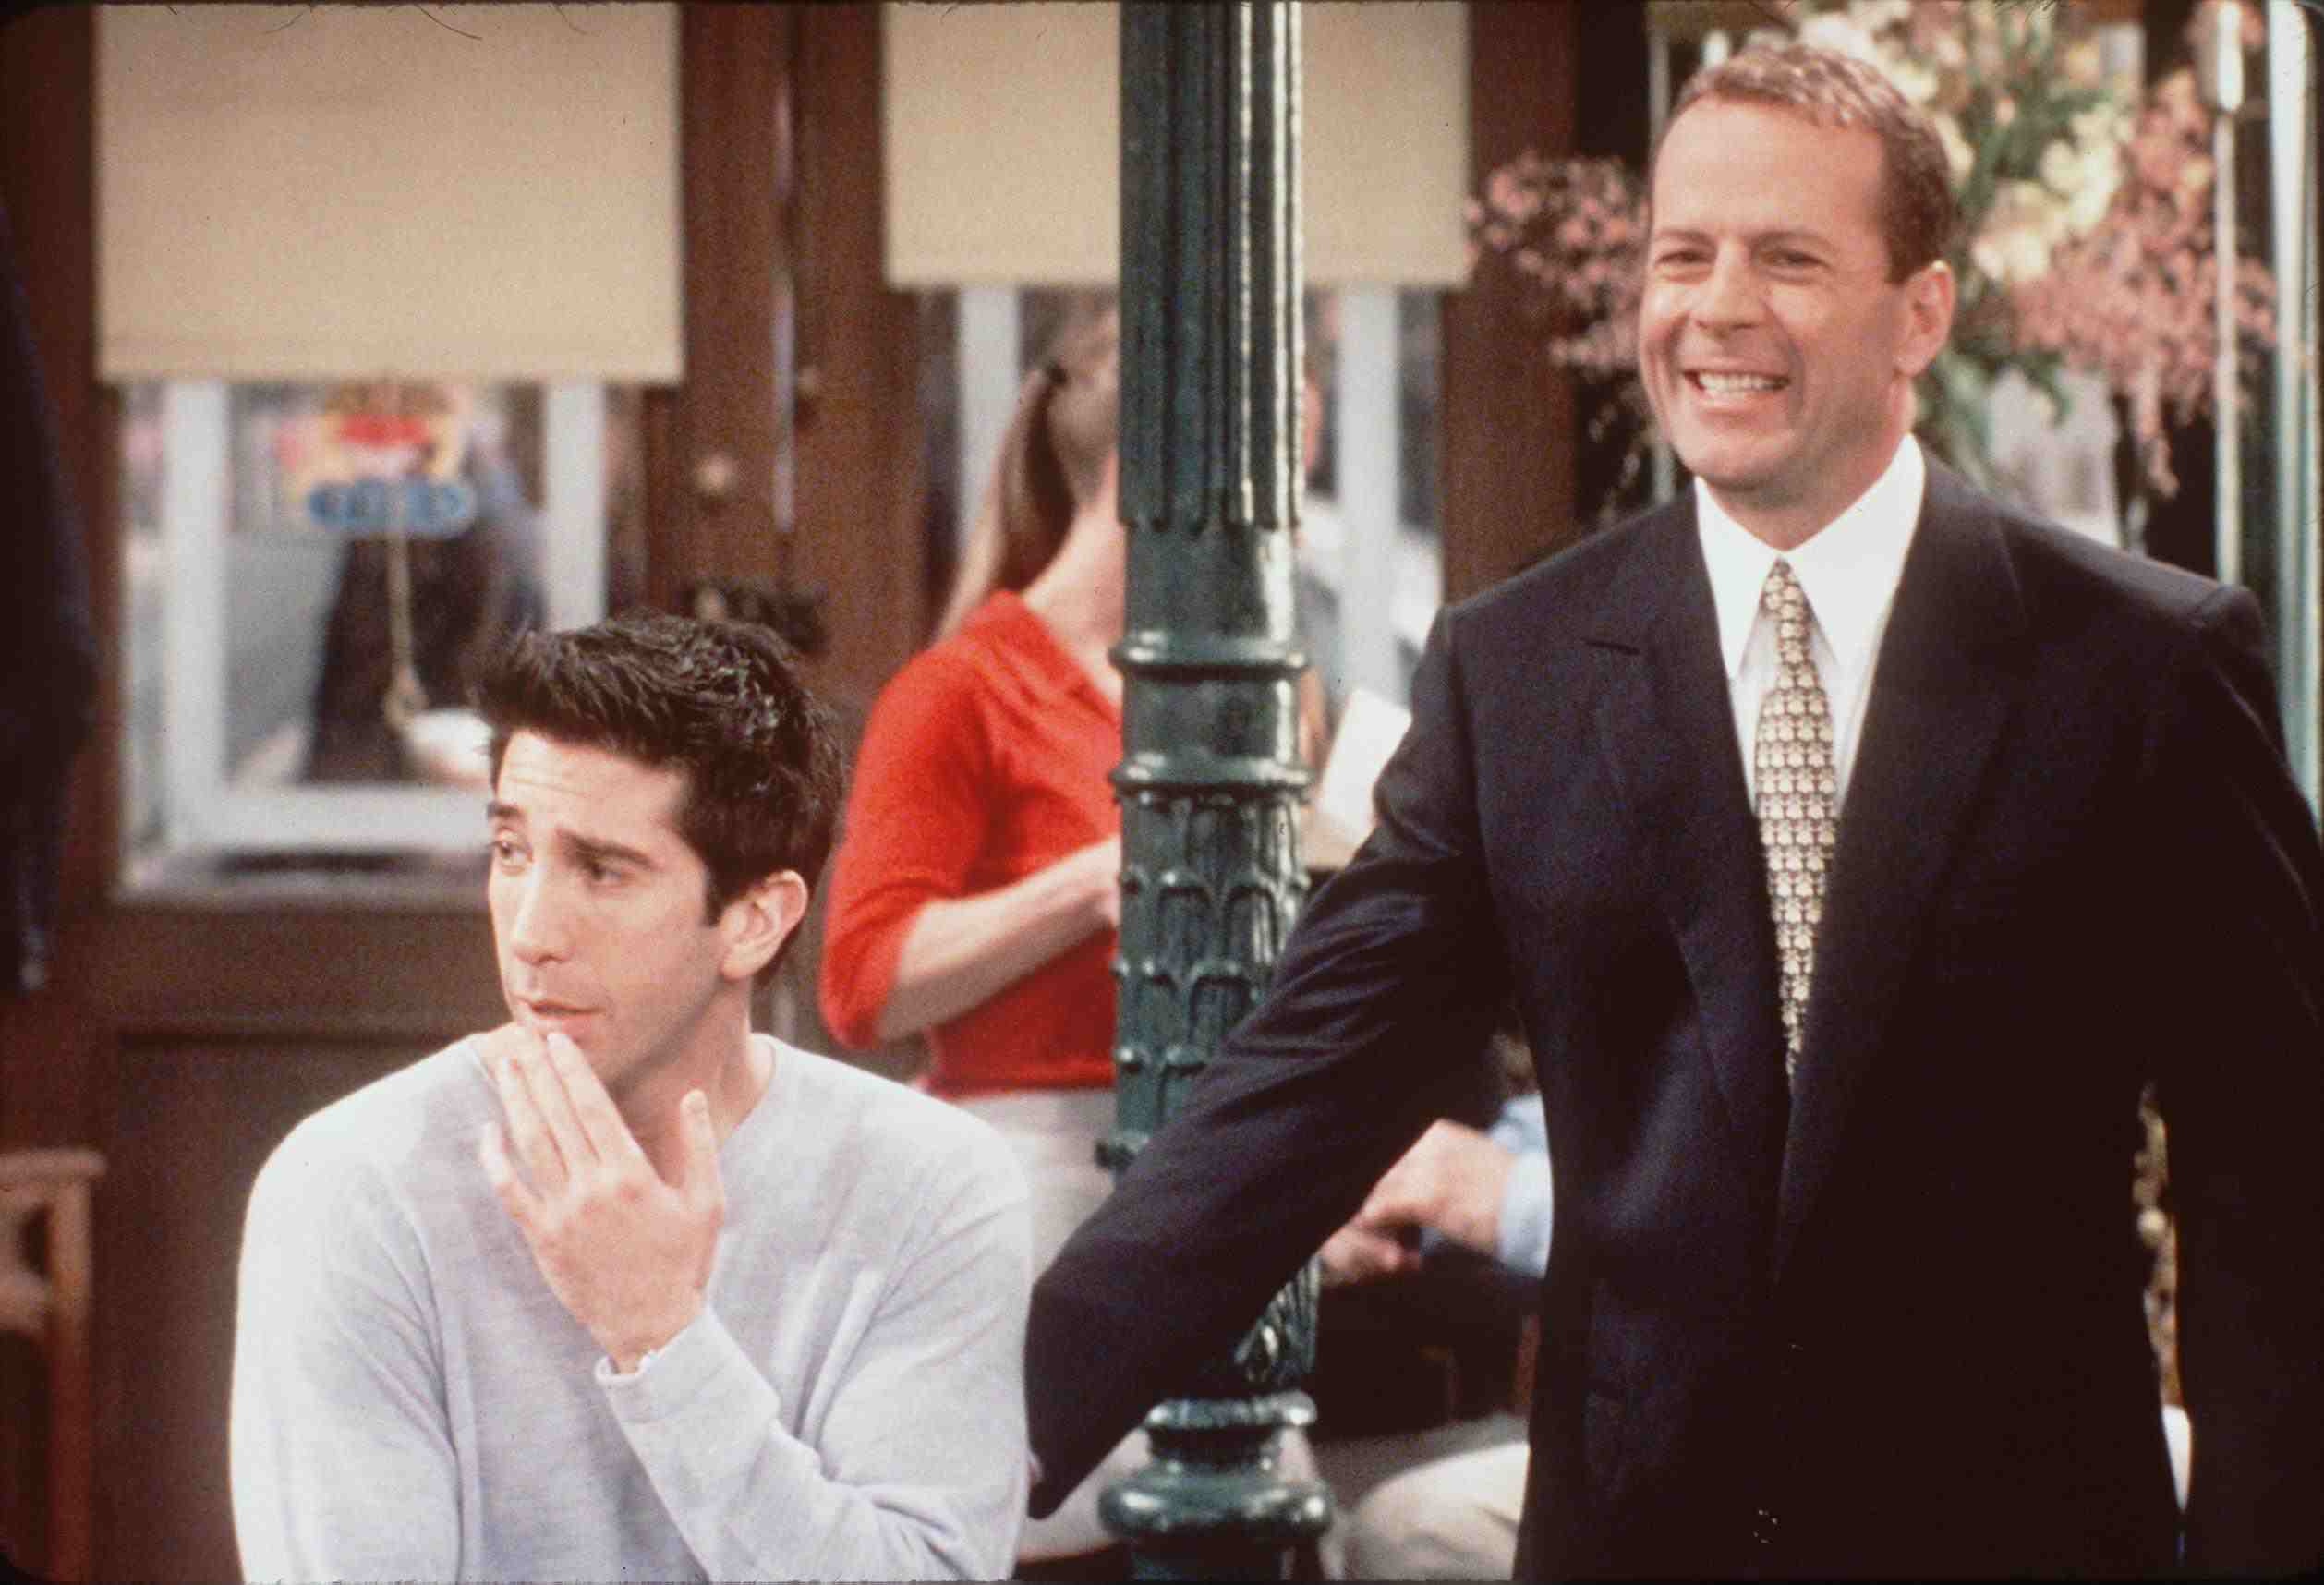 Bruce Willis next to David Schwimmer on the set of Friends.